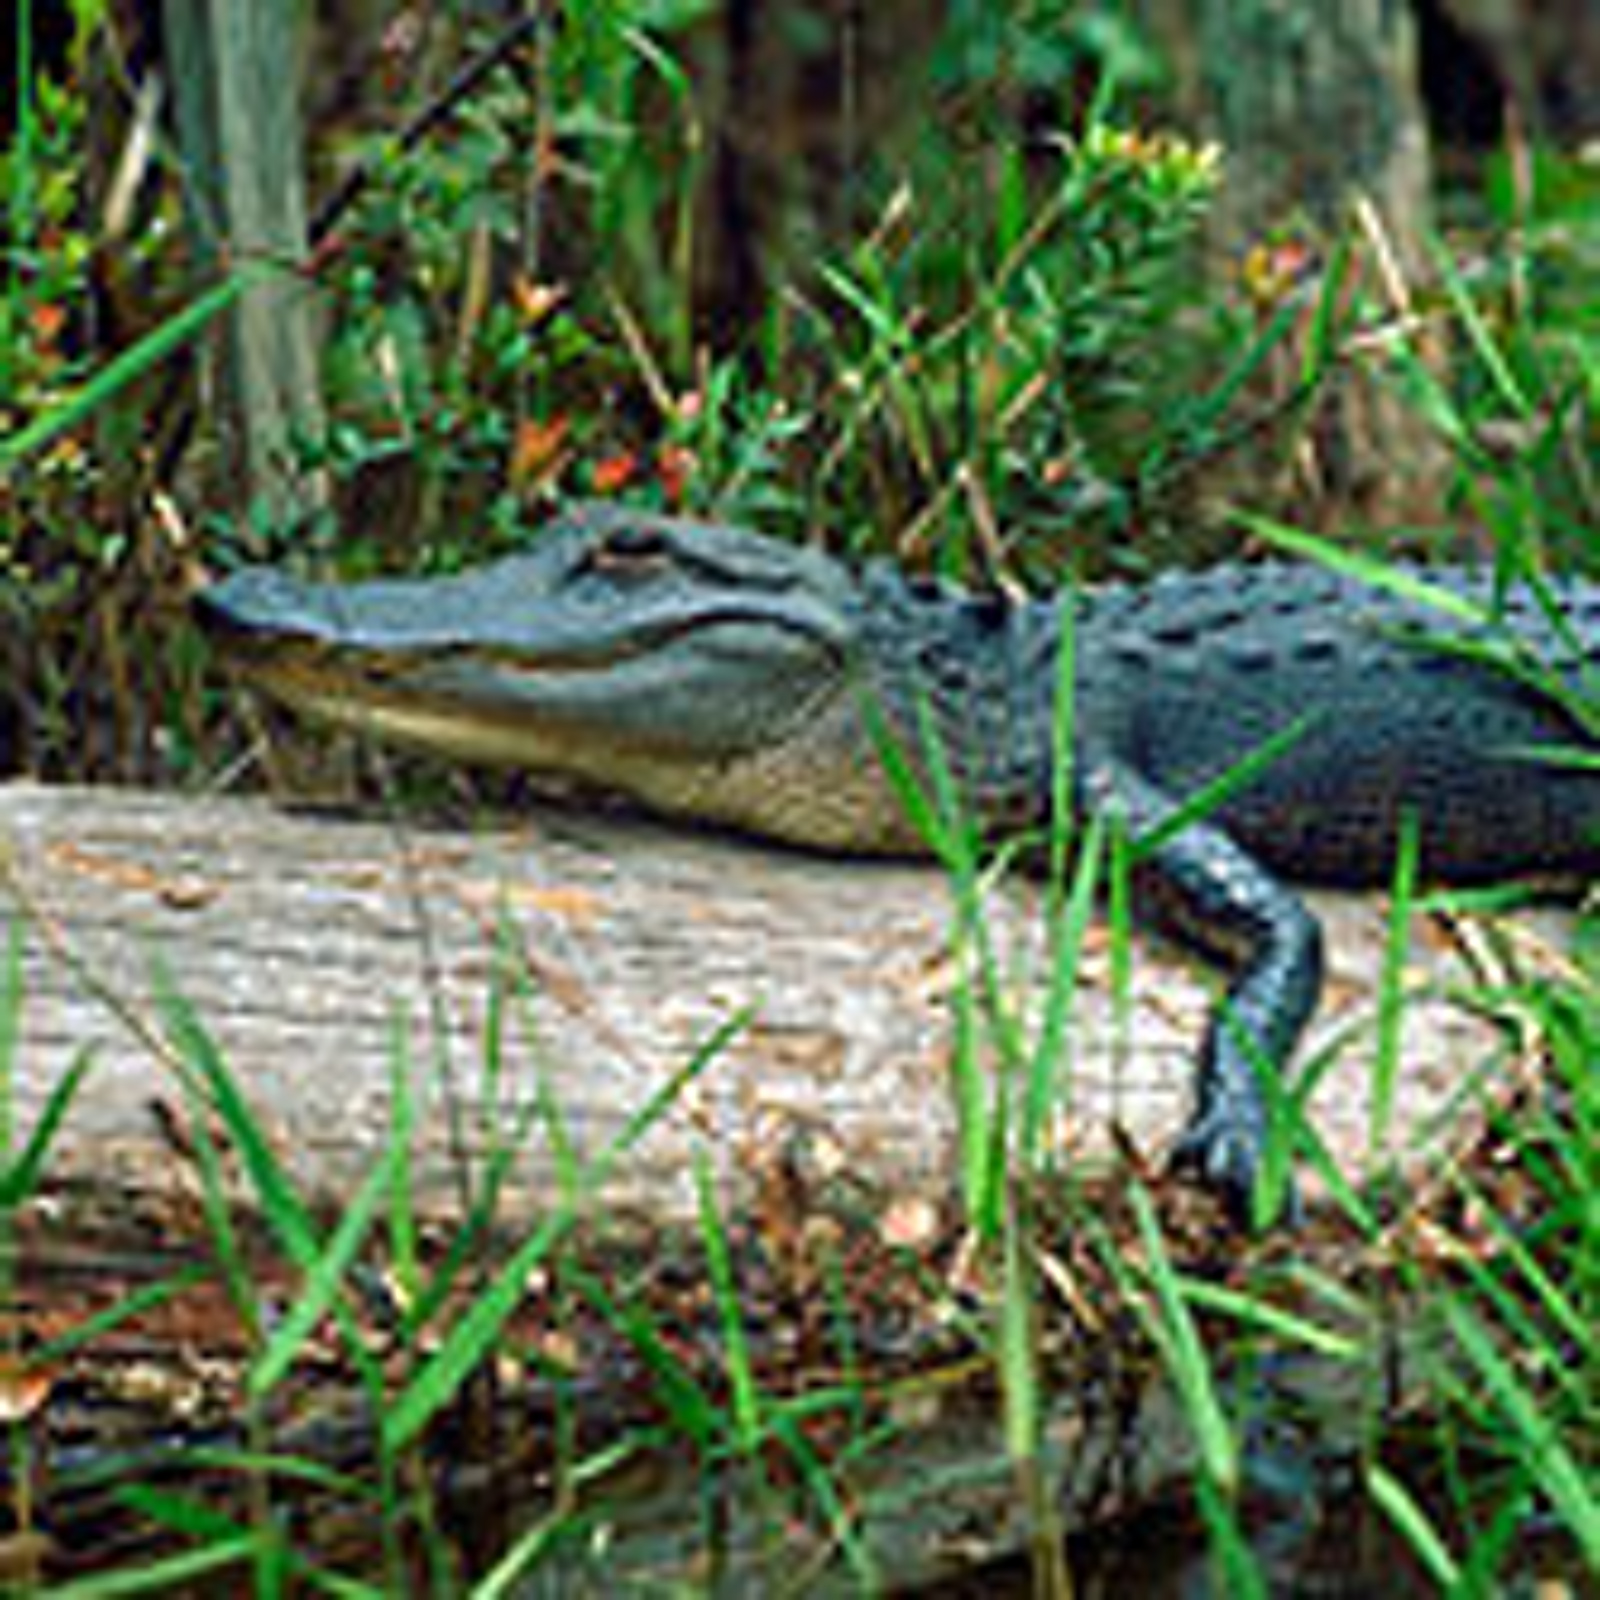 250px-Alligator_in_the_Okefenokee